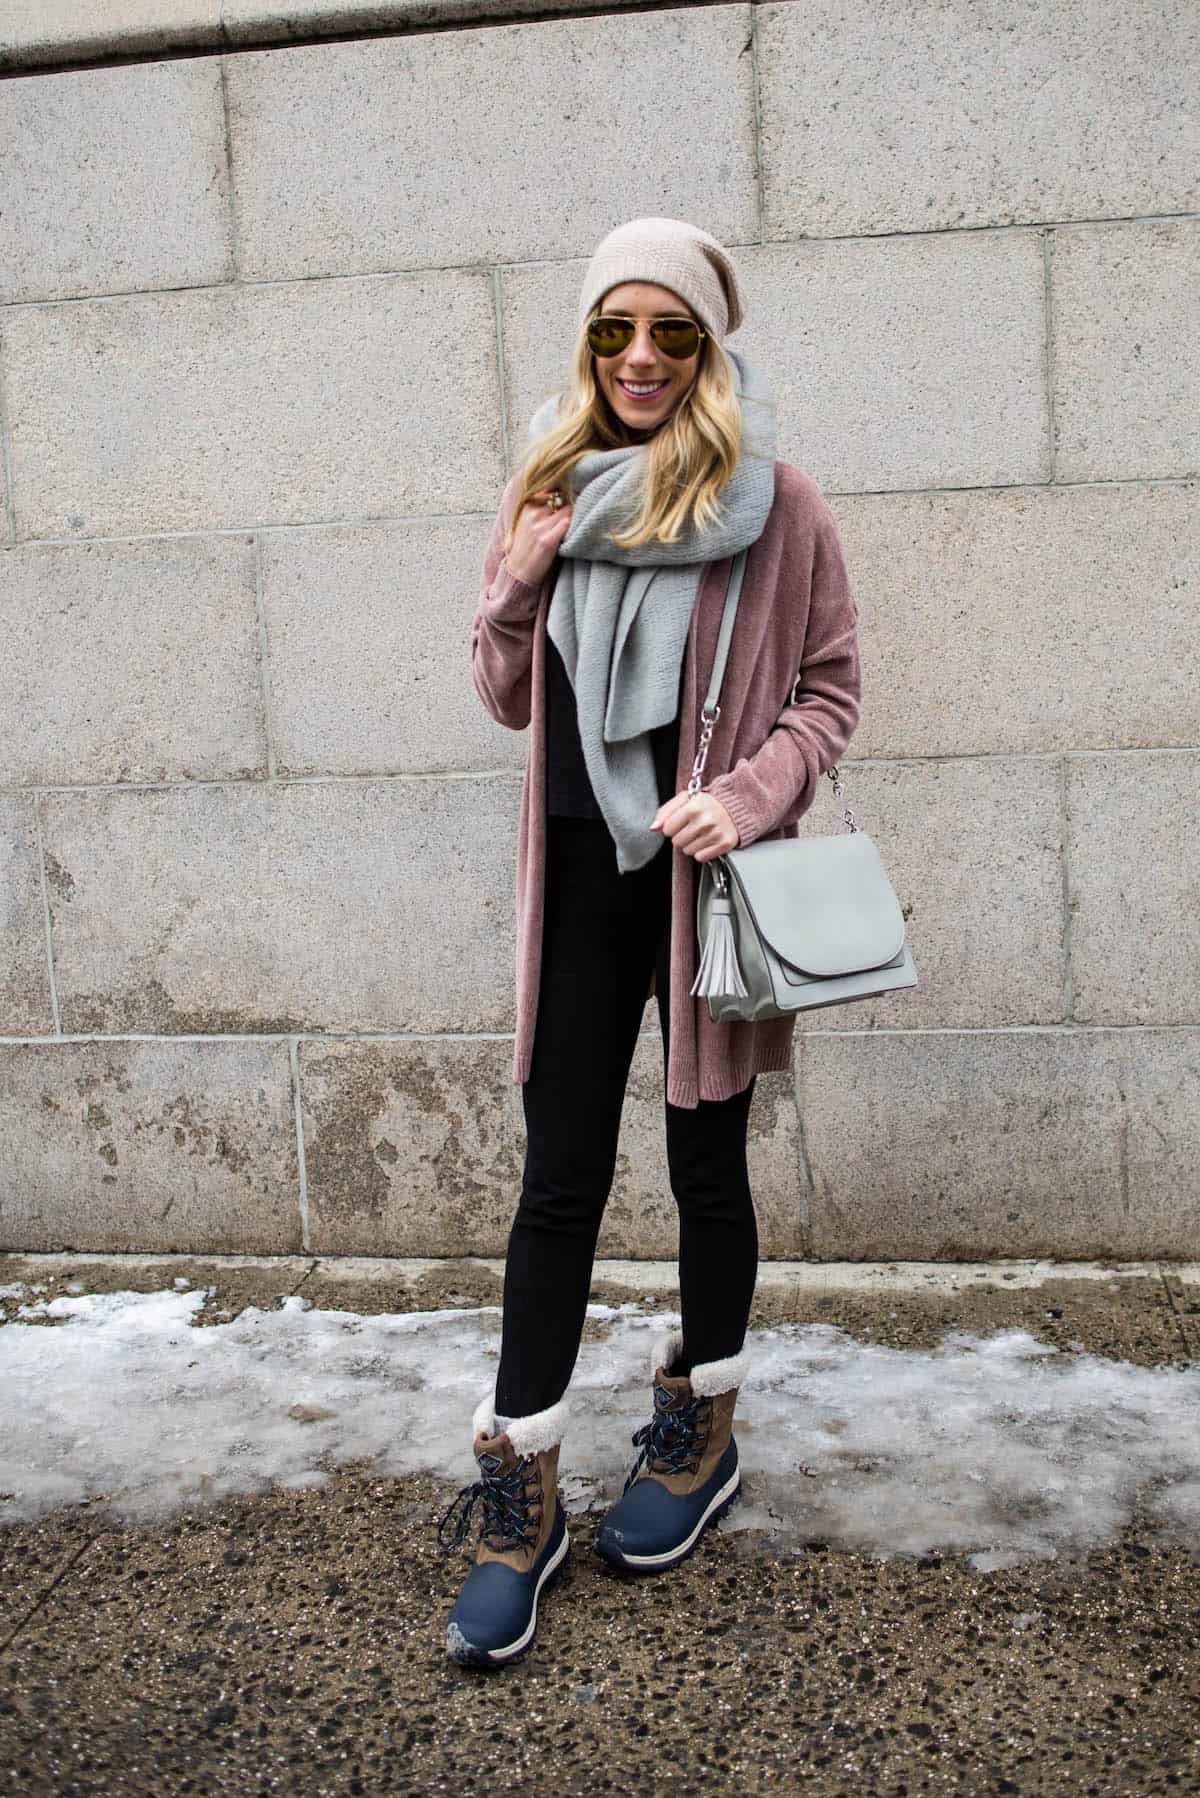 How To Dress Stylish For Cold Weather